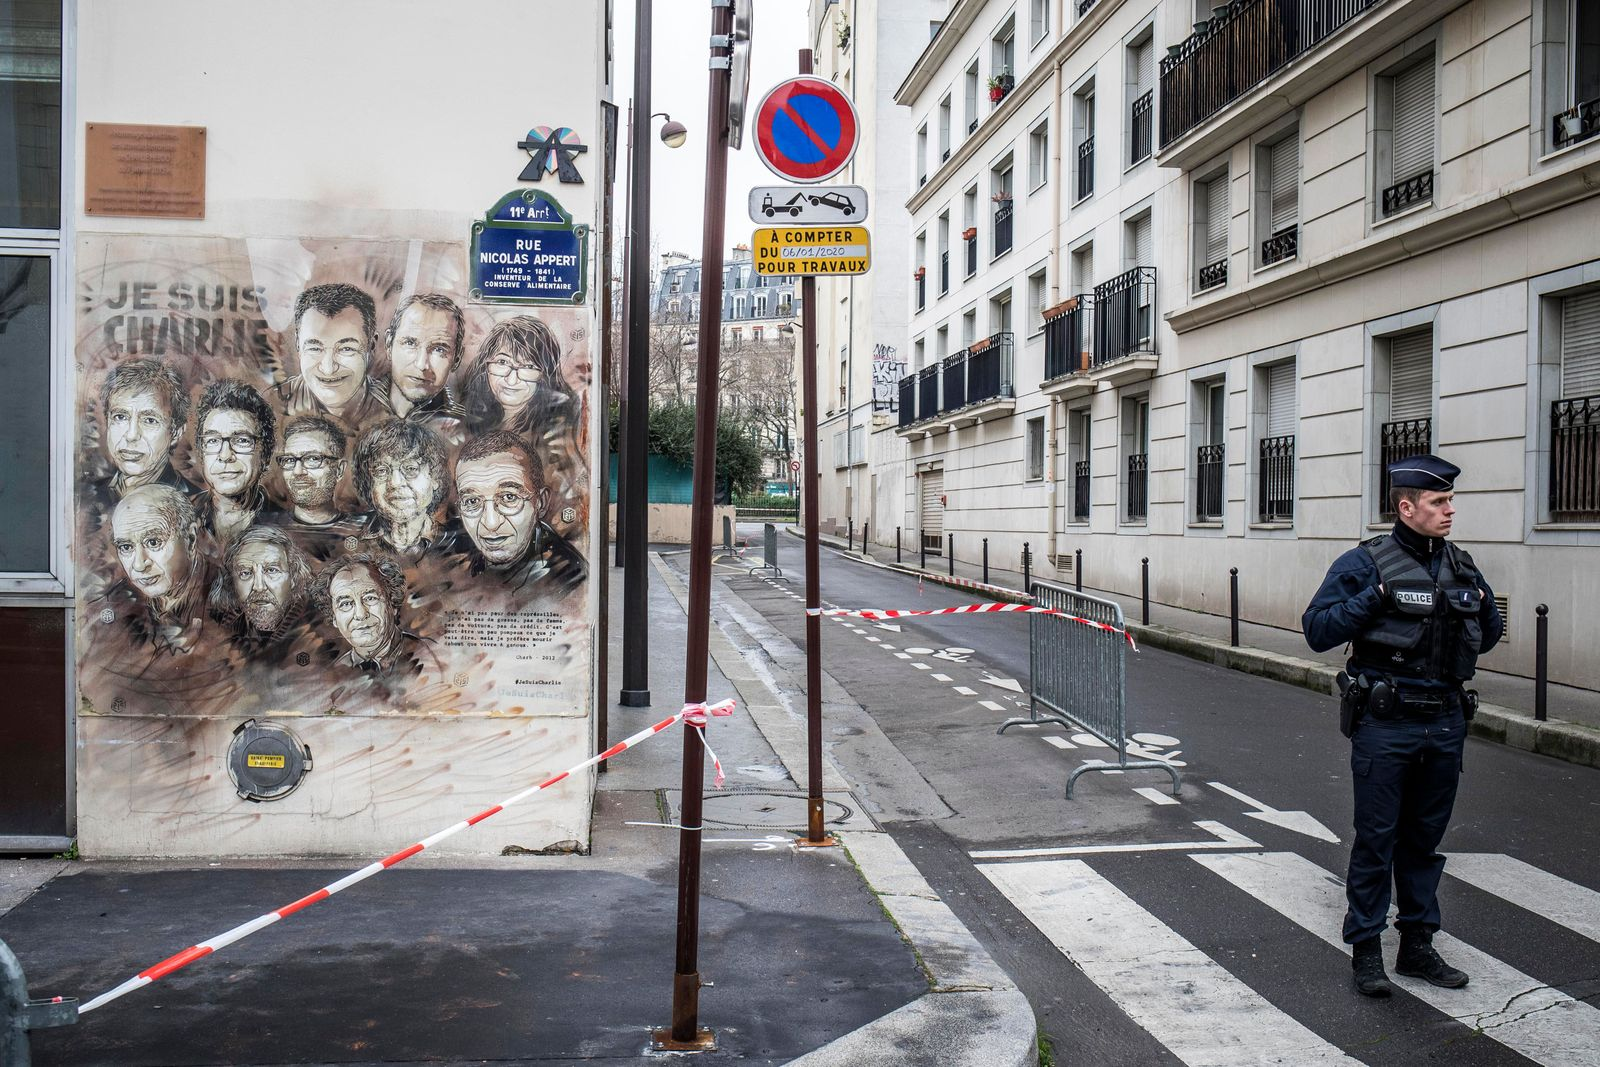 5th anniversary of attack on Charlie Hebdo magazine in Paris, France - 07 Jan 2020